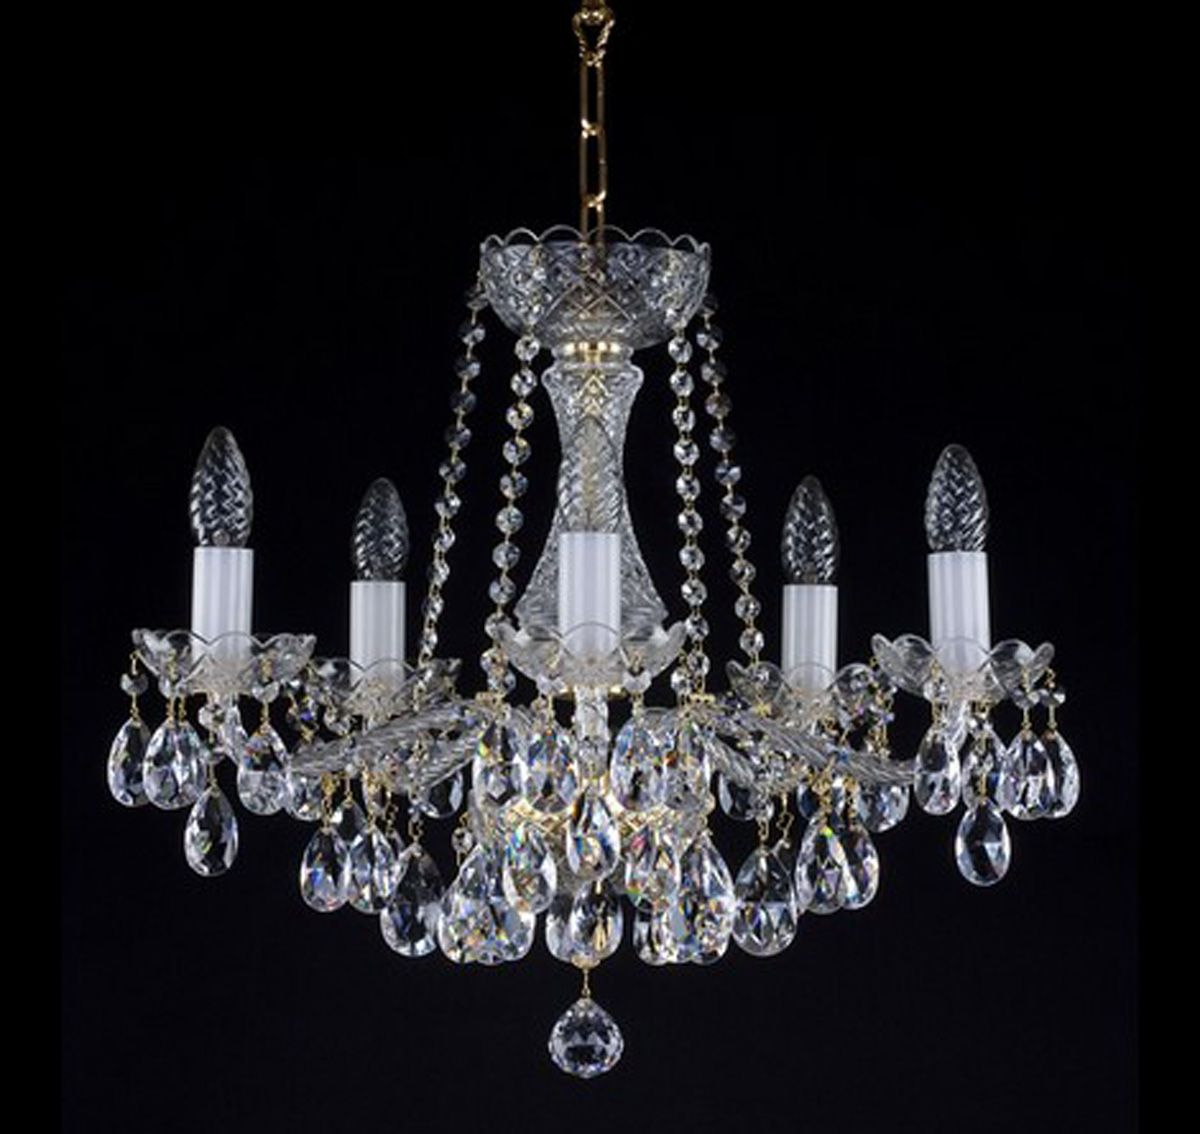 Beautiful 5 arm crystal chandelier ceiling chandeliers - Pictures of chandeliers ...